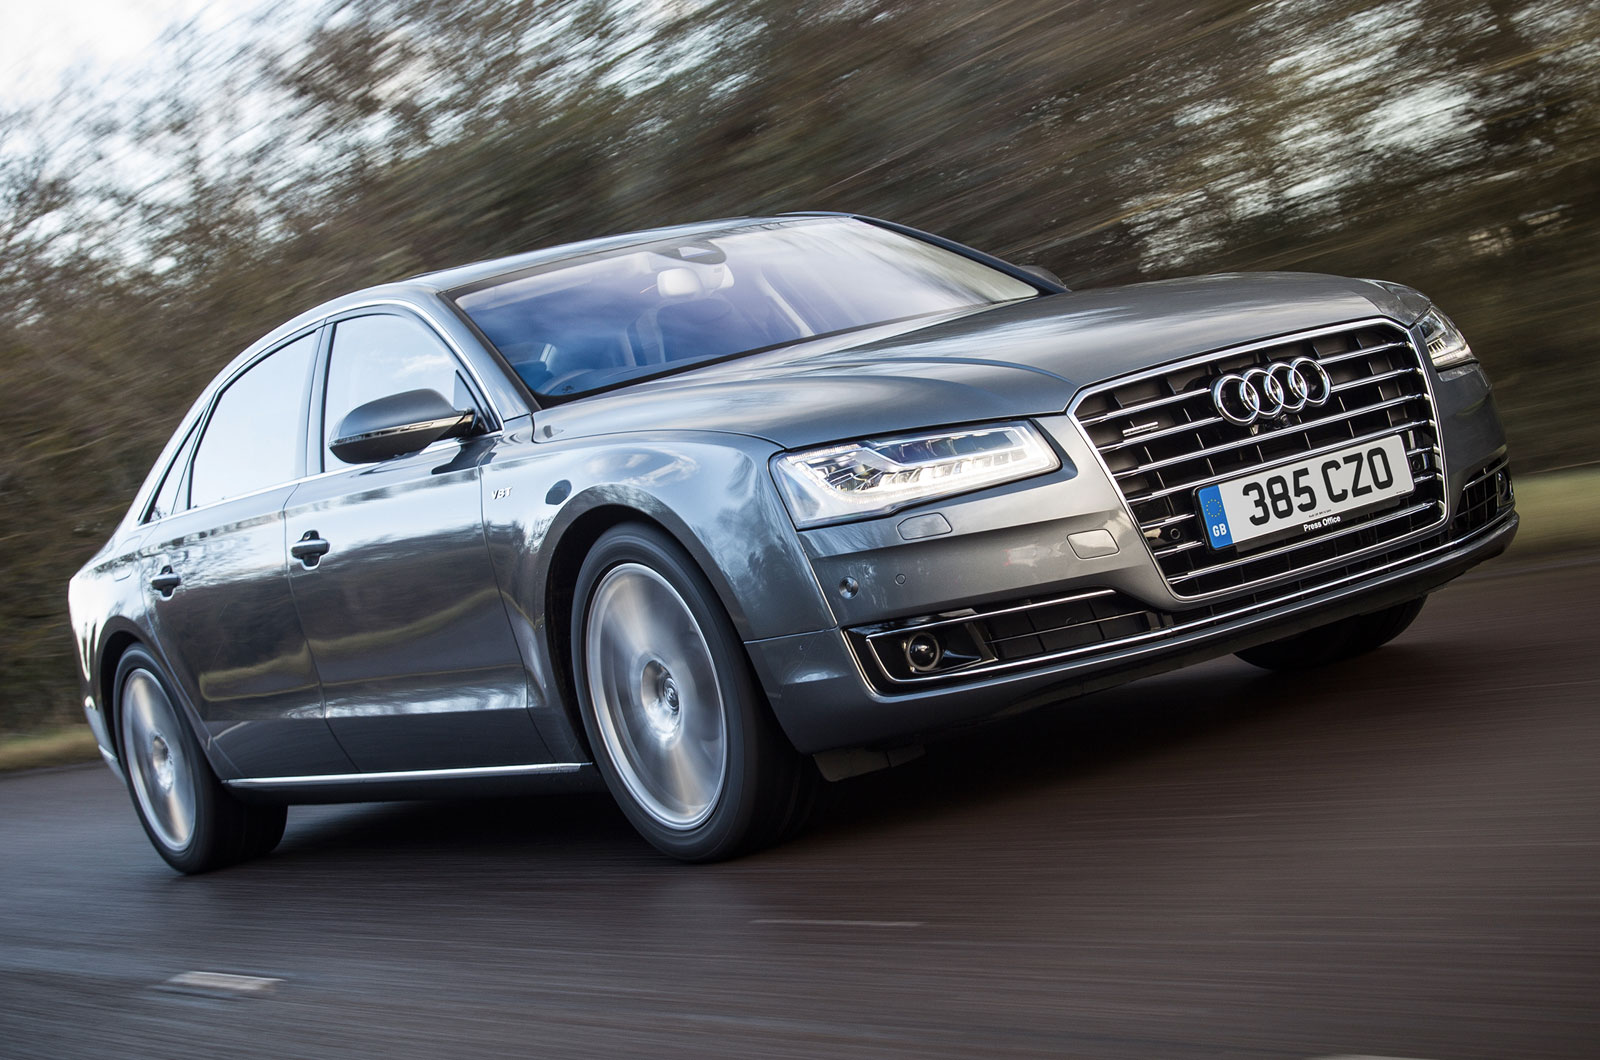 audi a8 l 4 2 tdi uk first drive review autocar. Black Bedroom Furniture Sets. Home Design Ideas